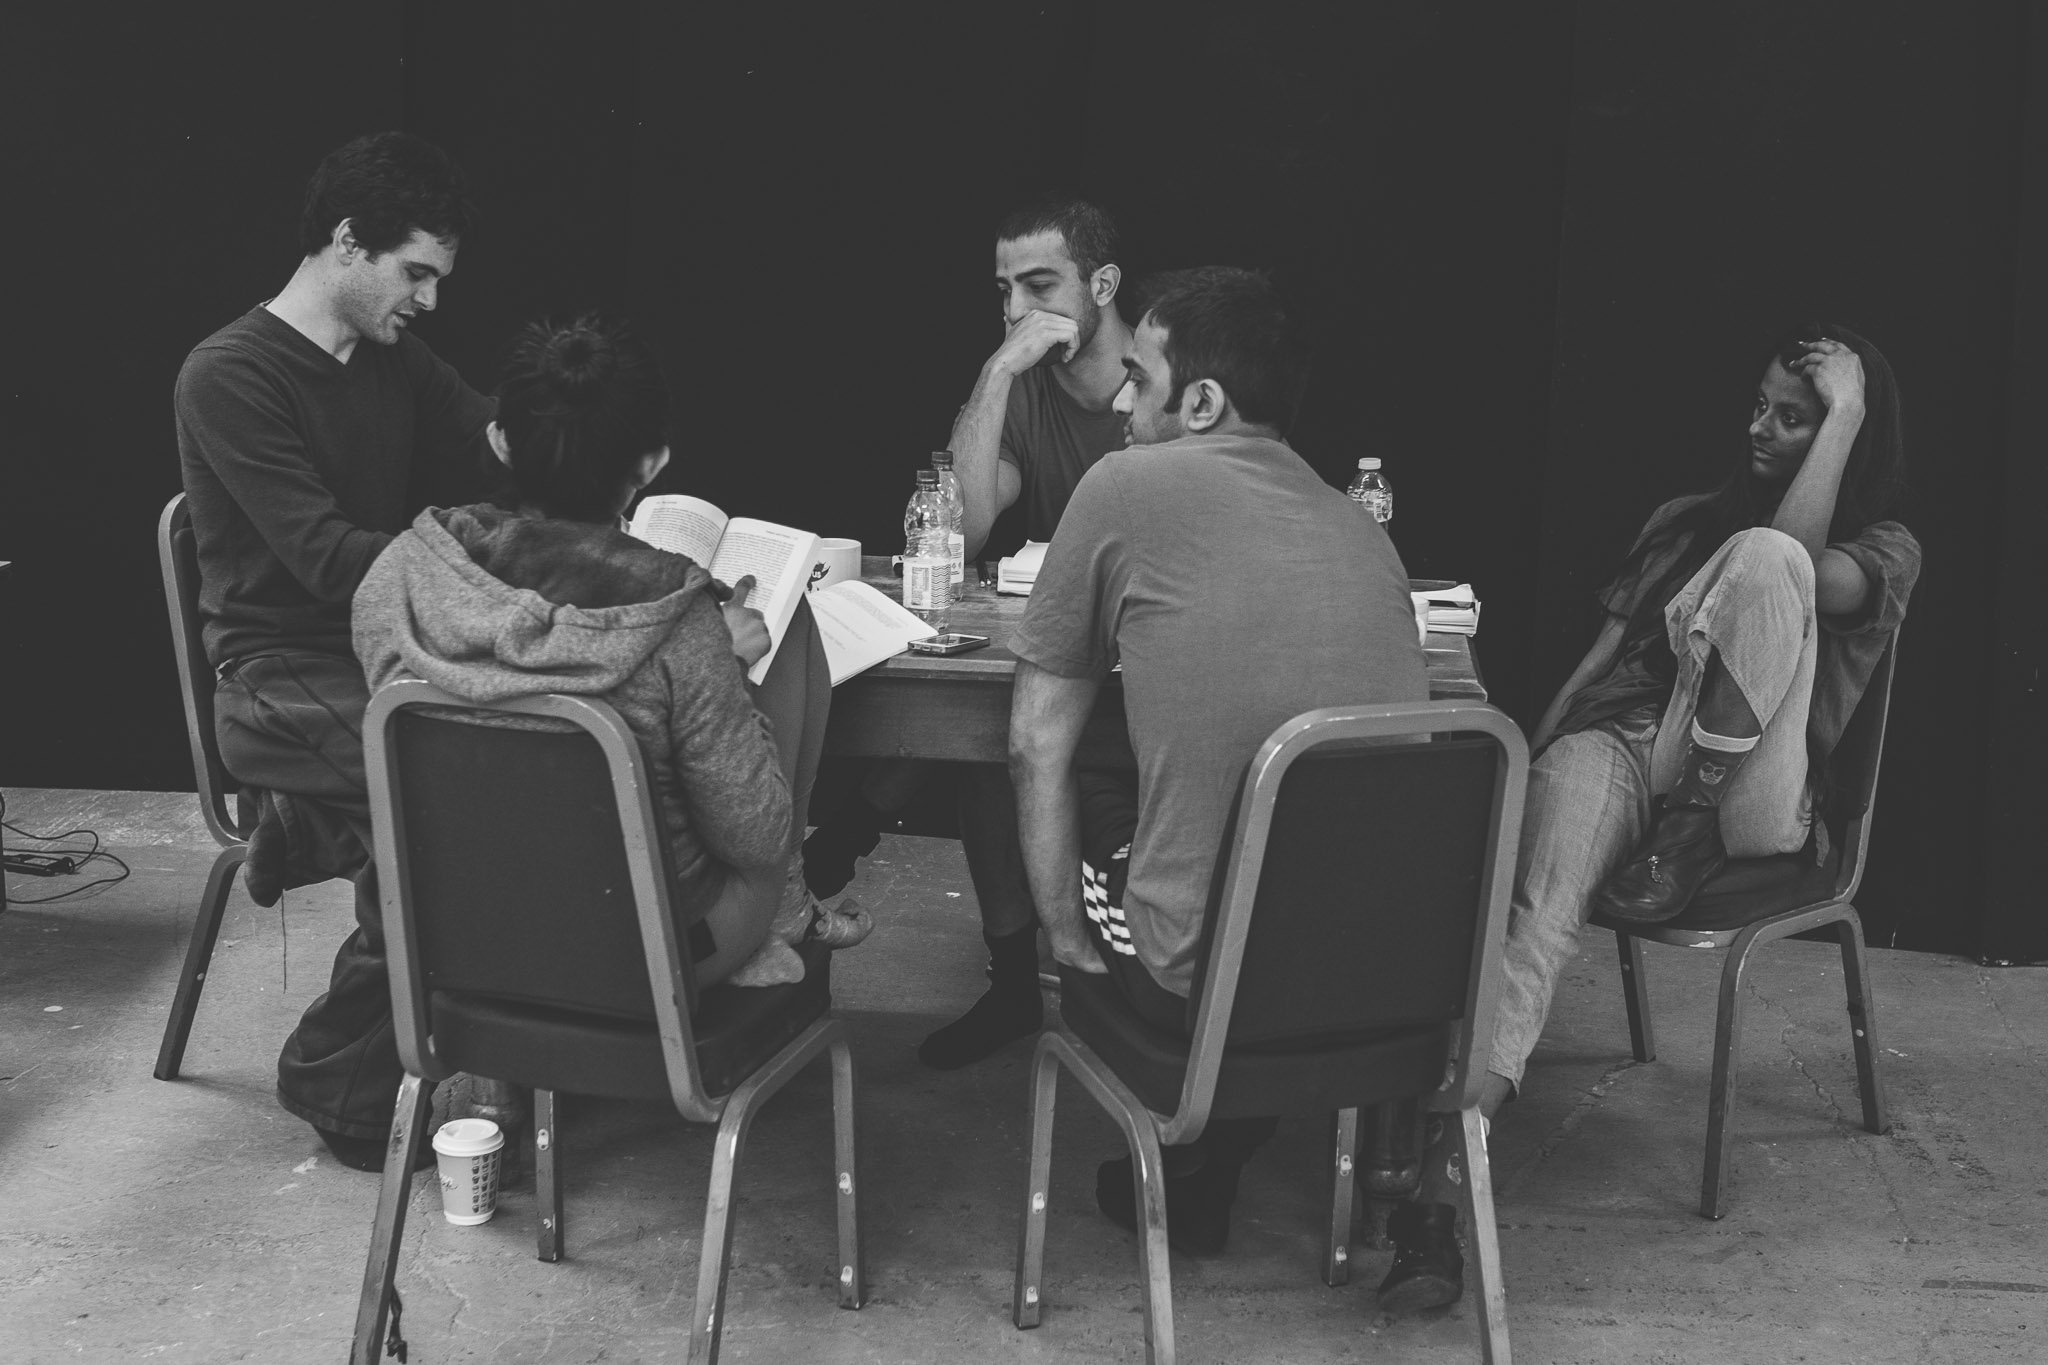 Actor's round a table discussing ideas Hand written research notes rehearsal Brighton Festival